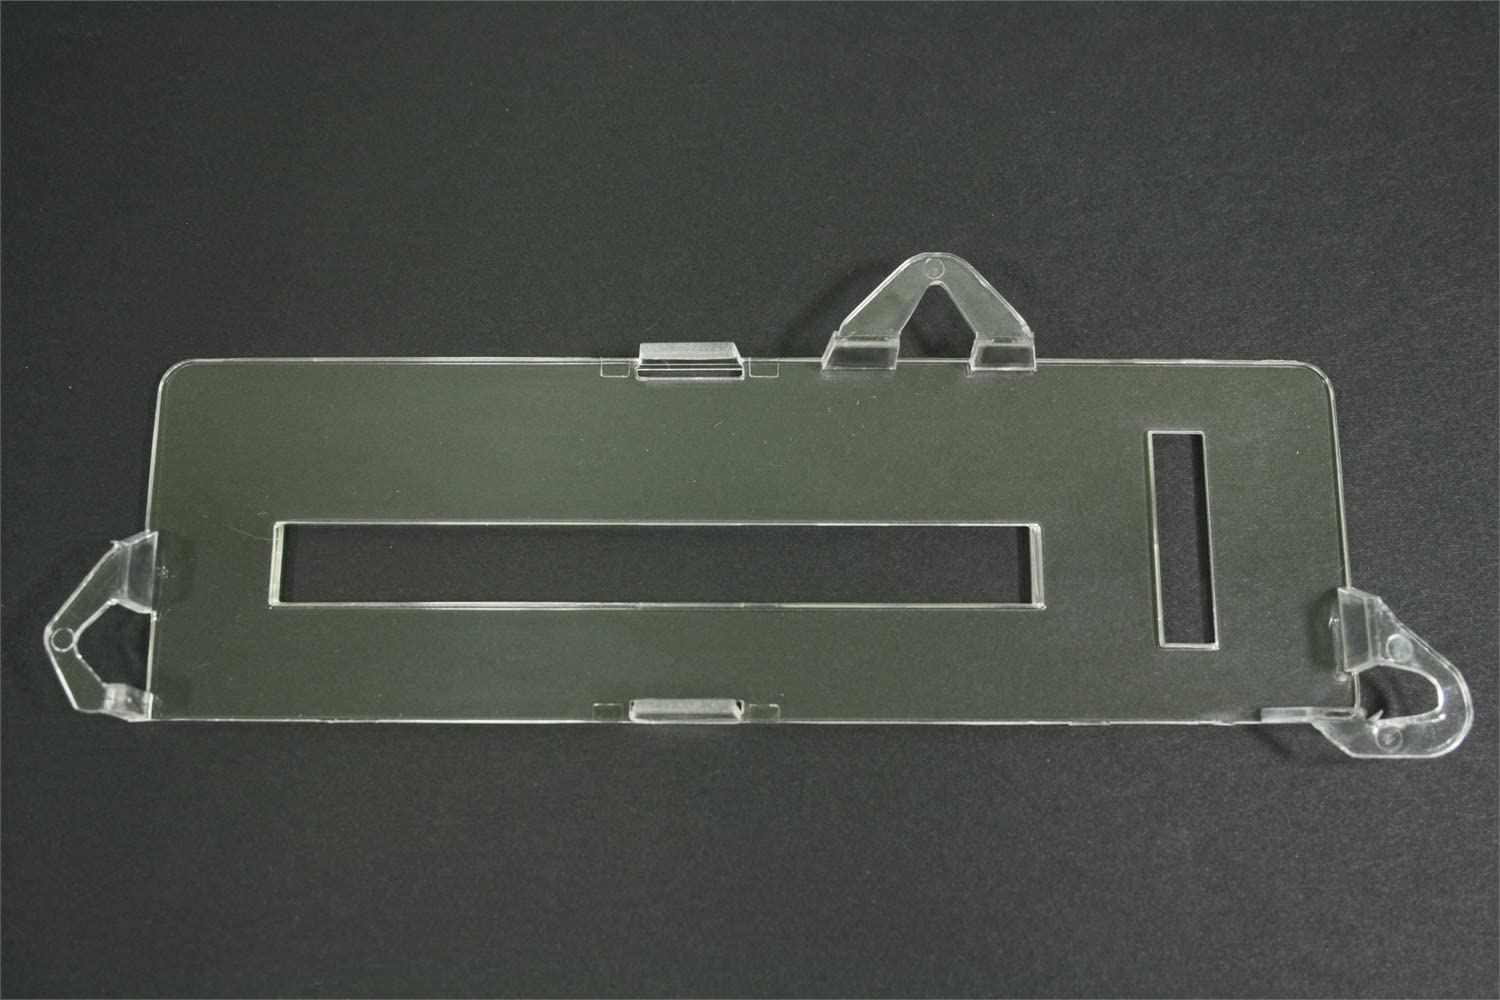 1968 Corvette Climate Control Lens with AC Air Conditioning